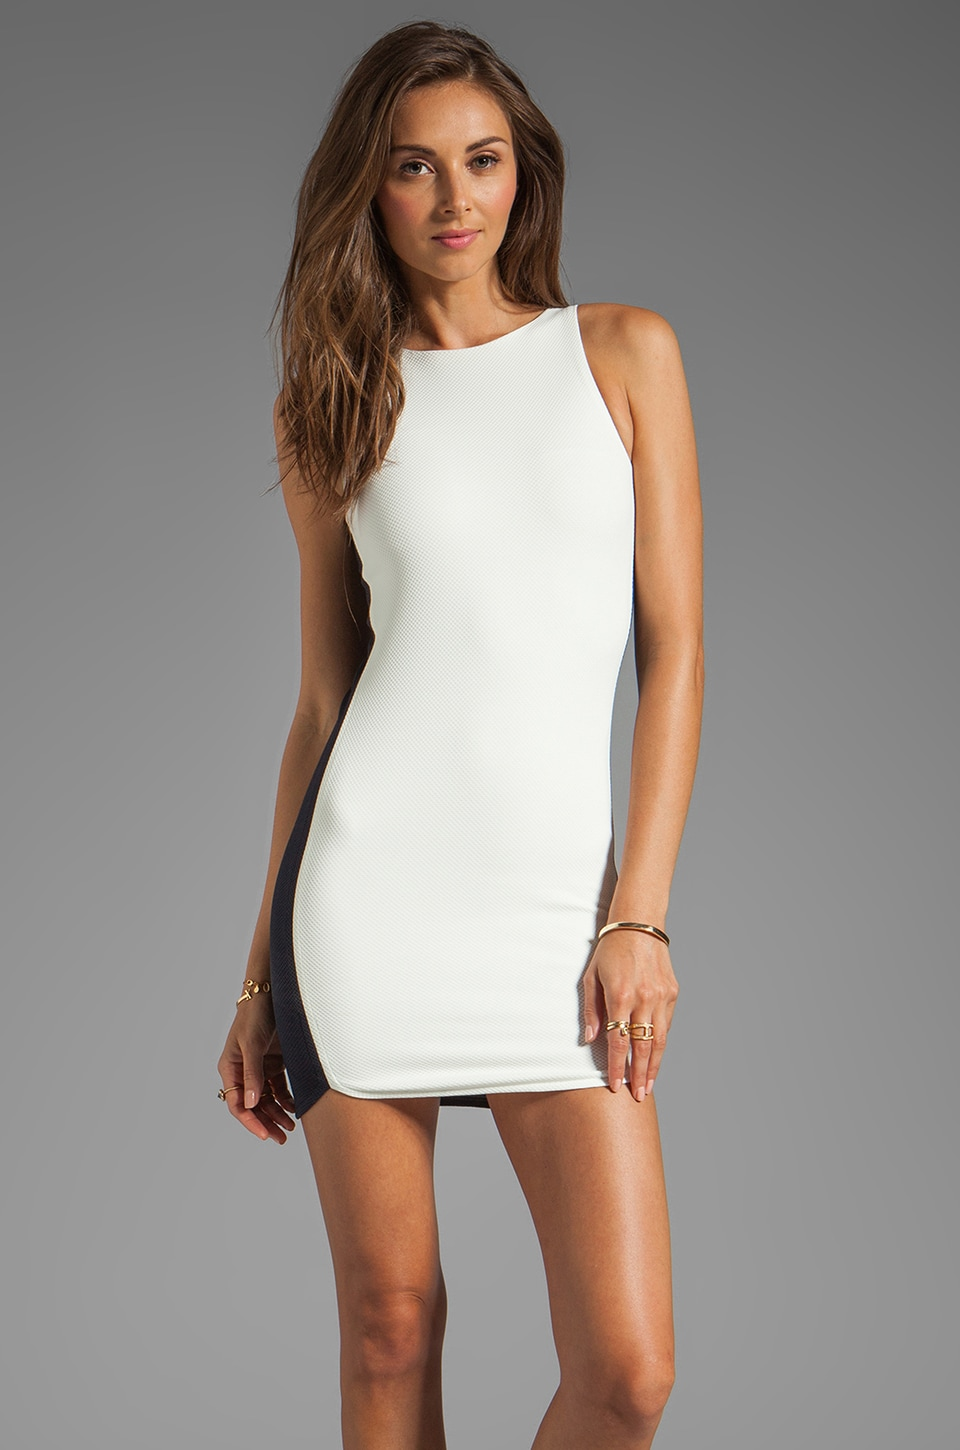 BEC&BRIDGE Abella Mini Dress in Contrast